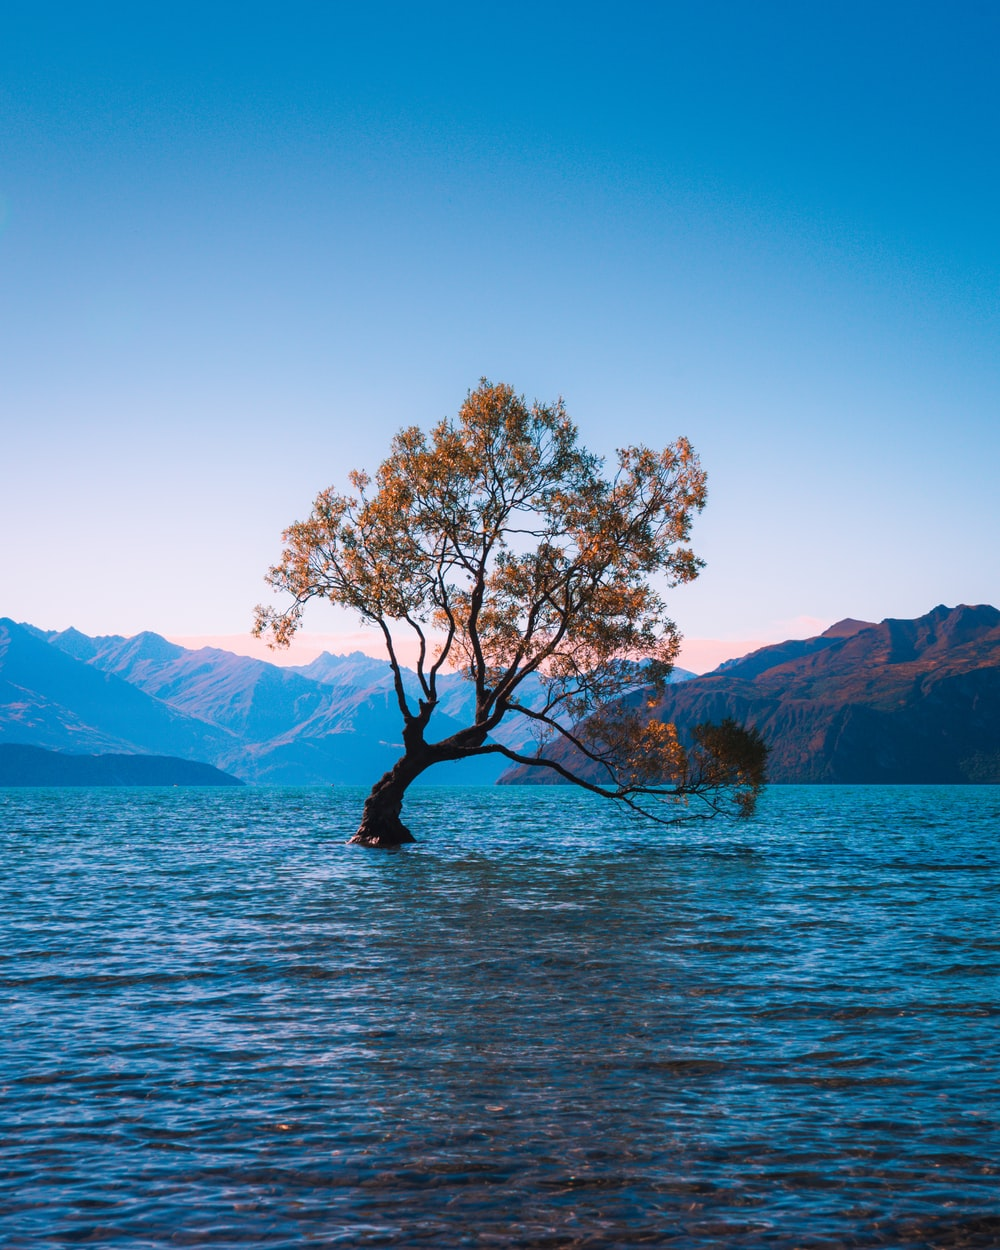 Wanaka Tree Pictures Download Free Images On Unsplash Hd wallpaper lake tree trunk mountain